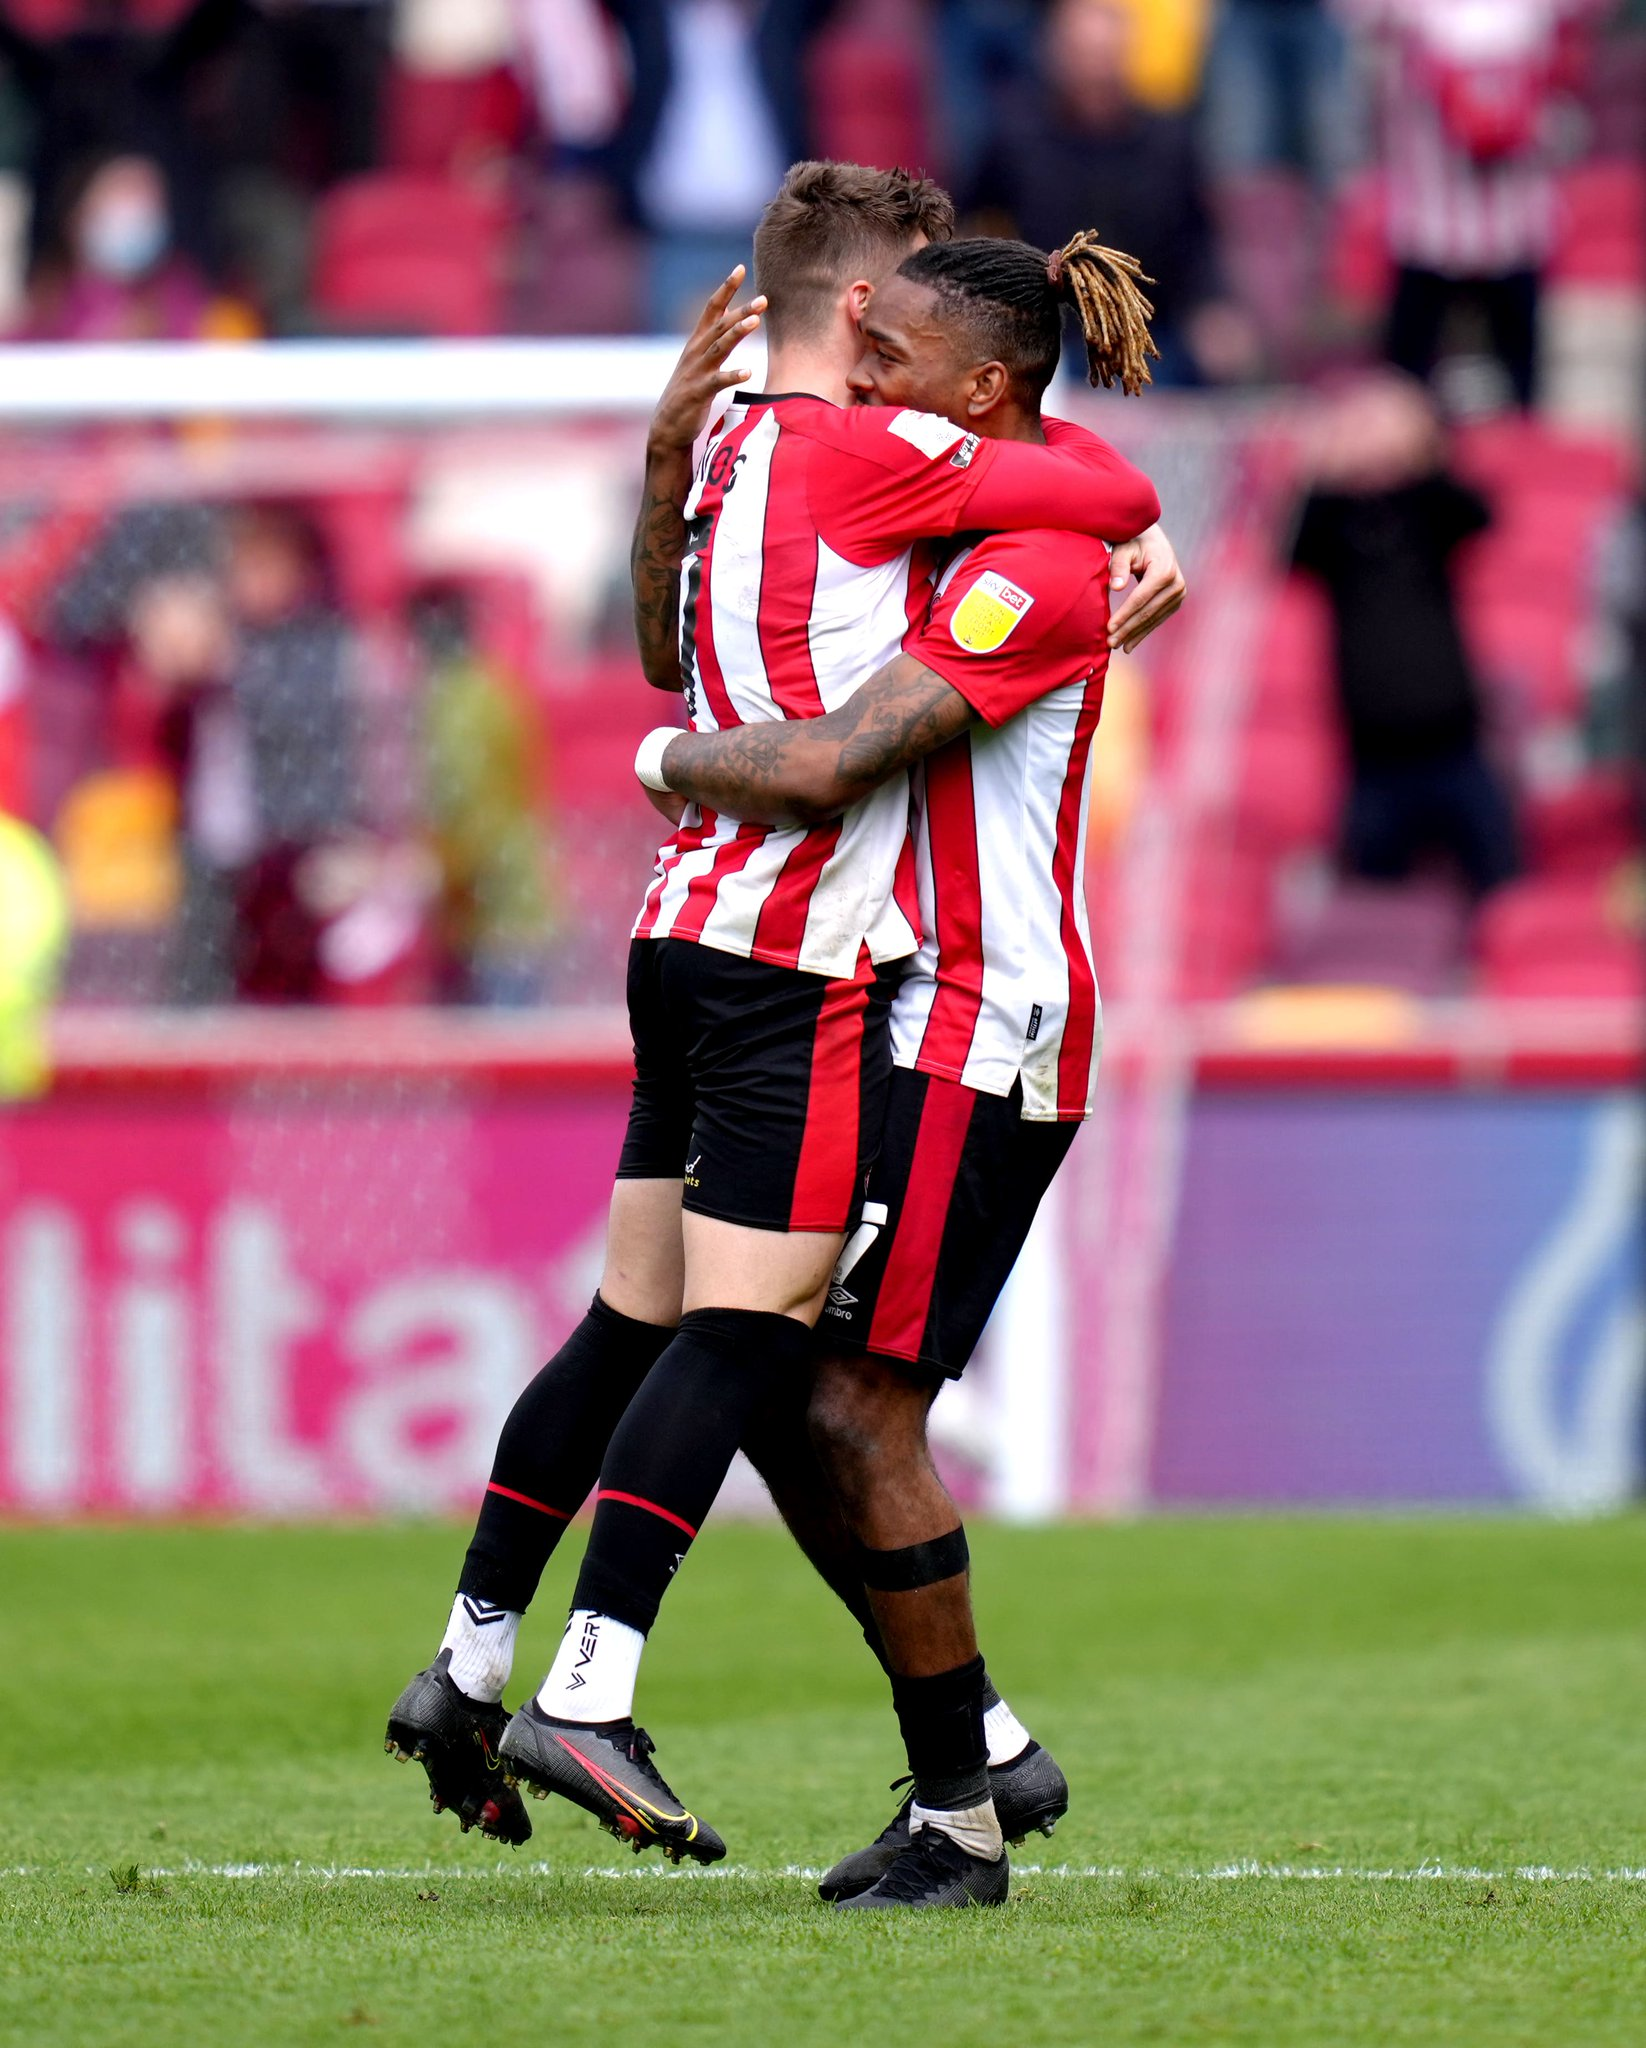 Brentford Promoted To The Premier League For The First Time